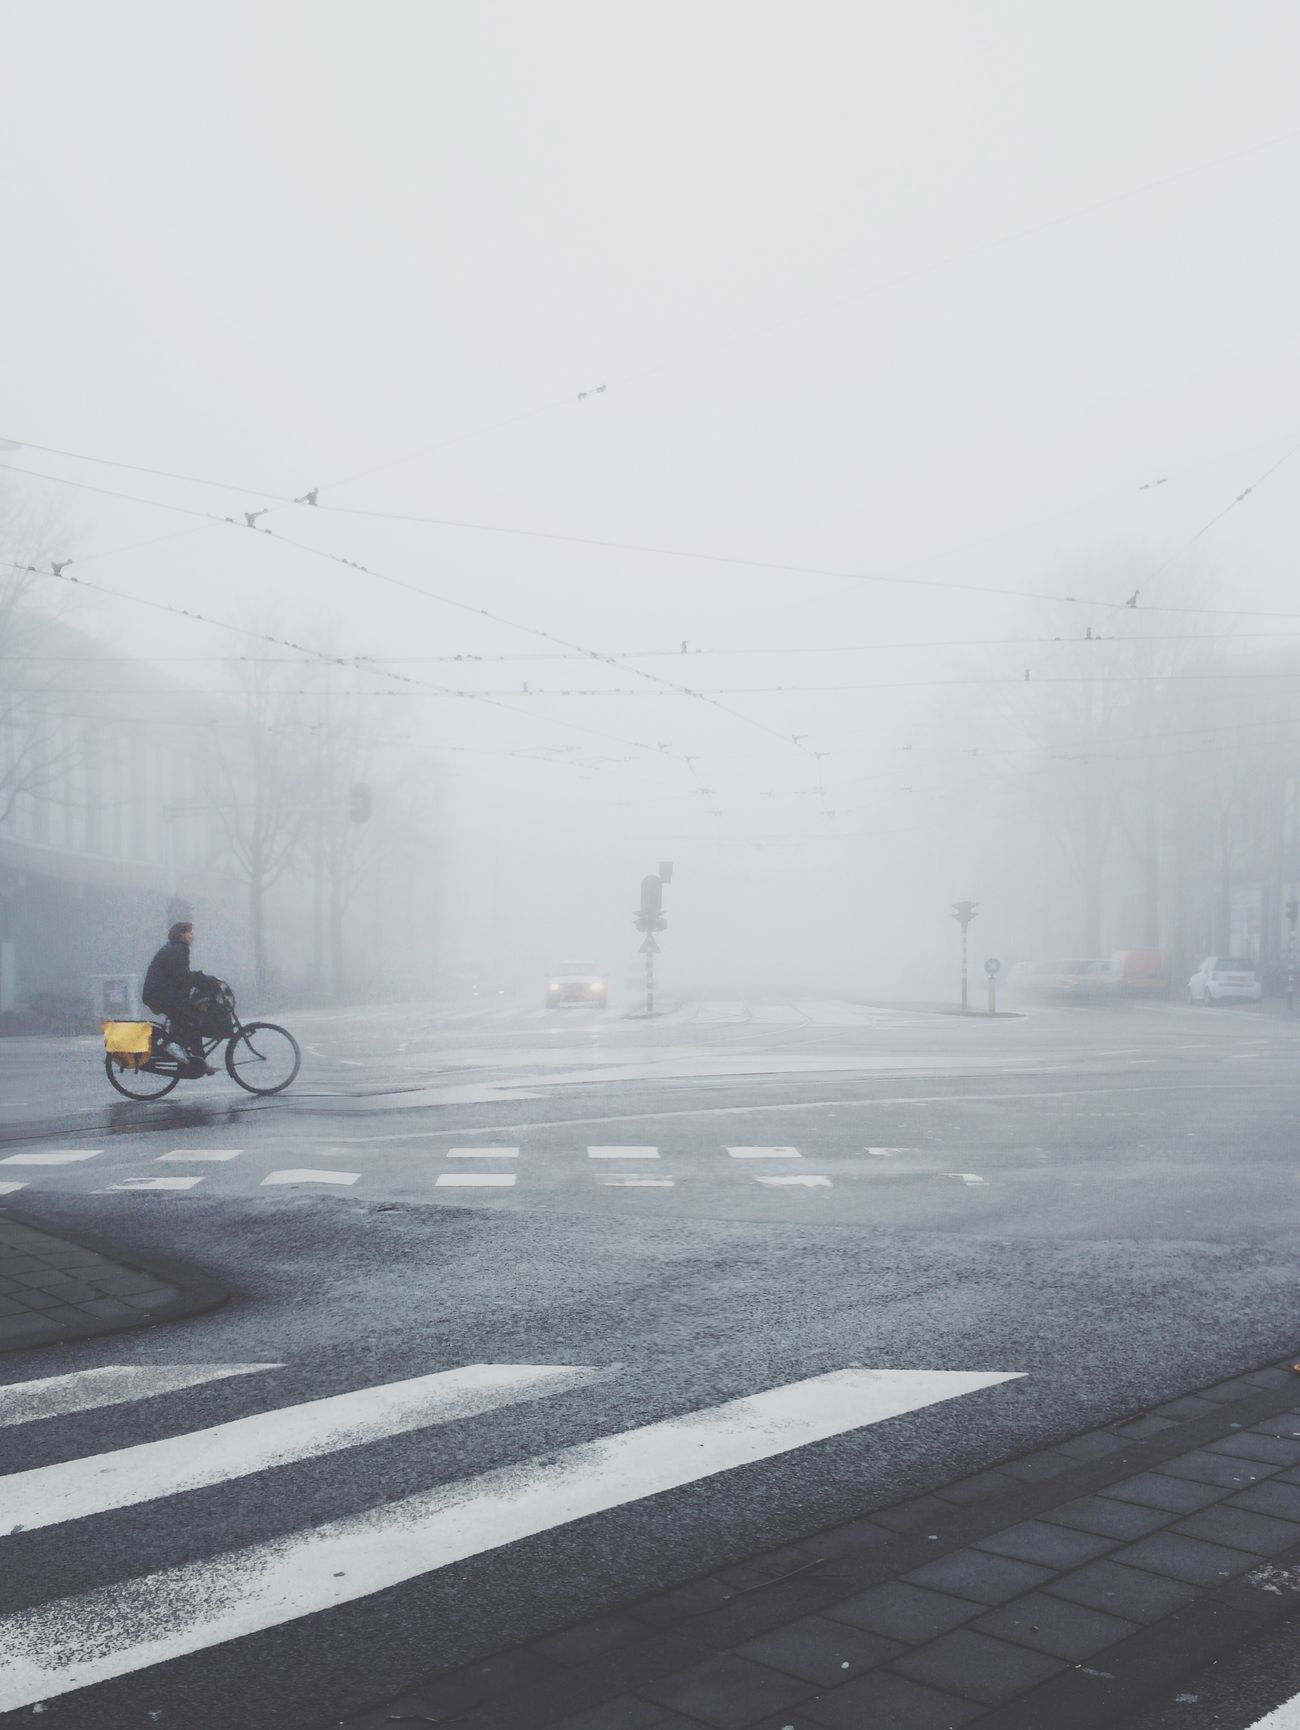 Amsterdam VSCO VSCO Cam Vscogood Vscocam Fog Foggy Morning Bike Bike Ride Skrwt Celebrate Your Ride